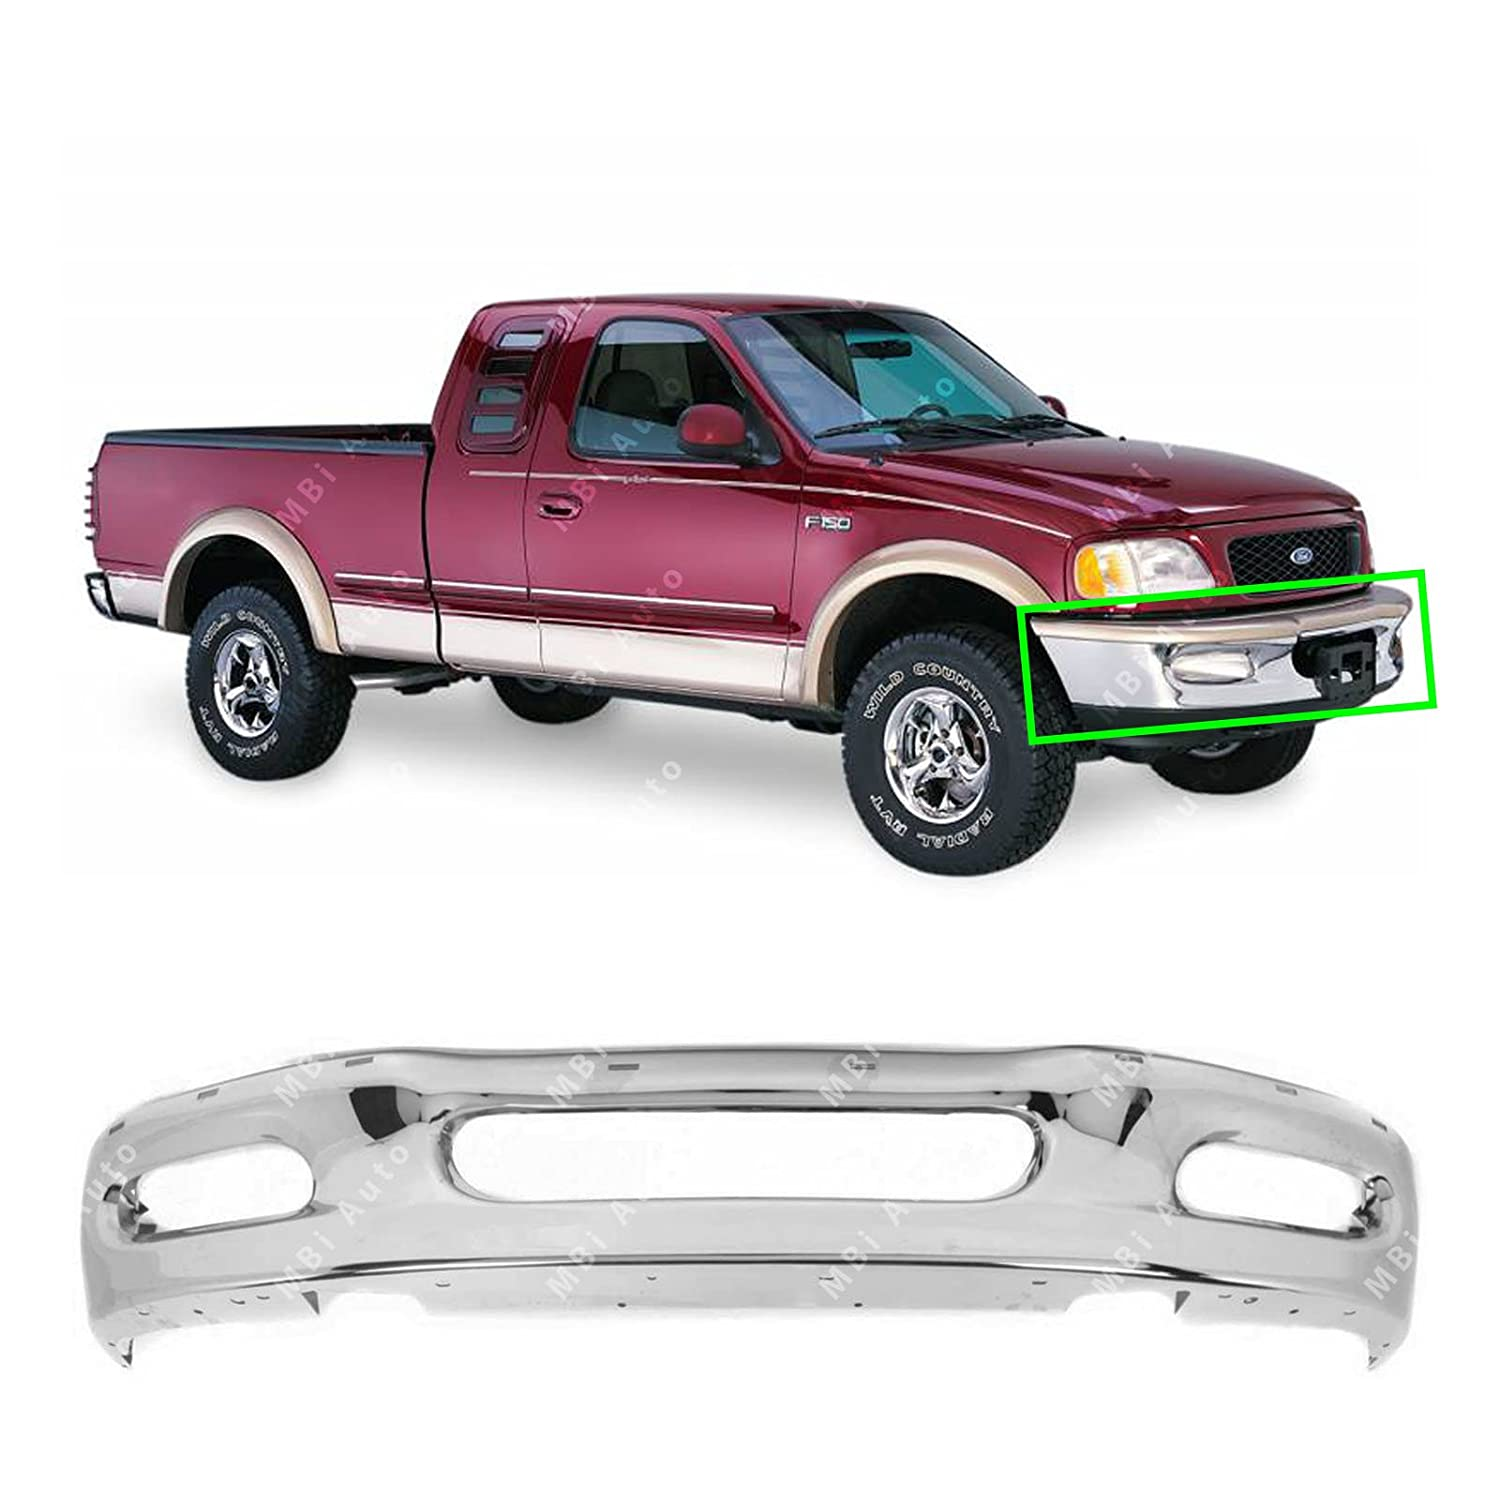 MBI AUTO - Chrome, Steel Front Bumper Face Bar for 1997 1998 Ford F150 & Expedition 97 98, FO1002338